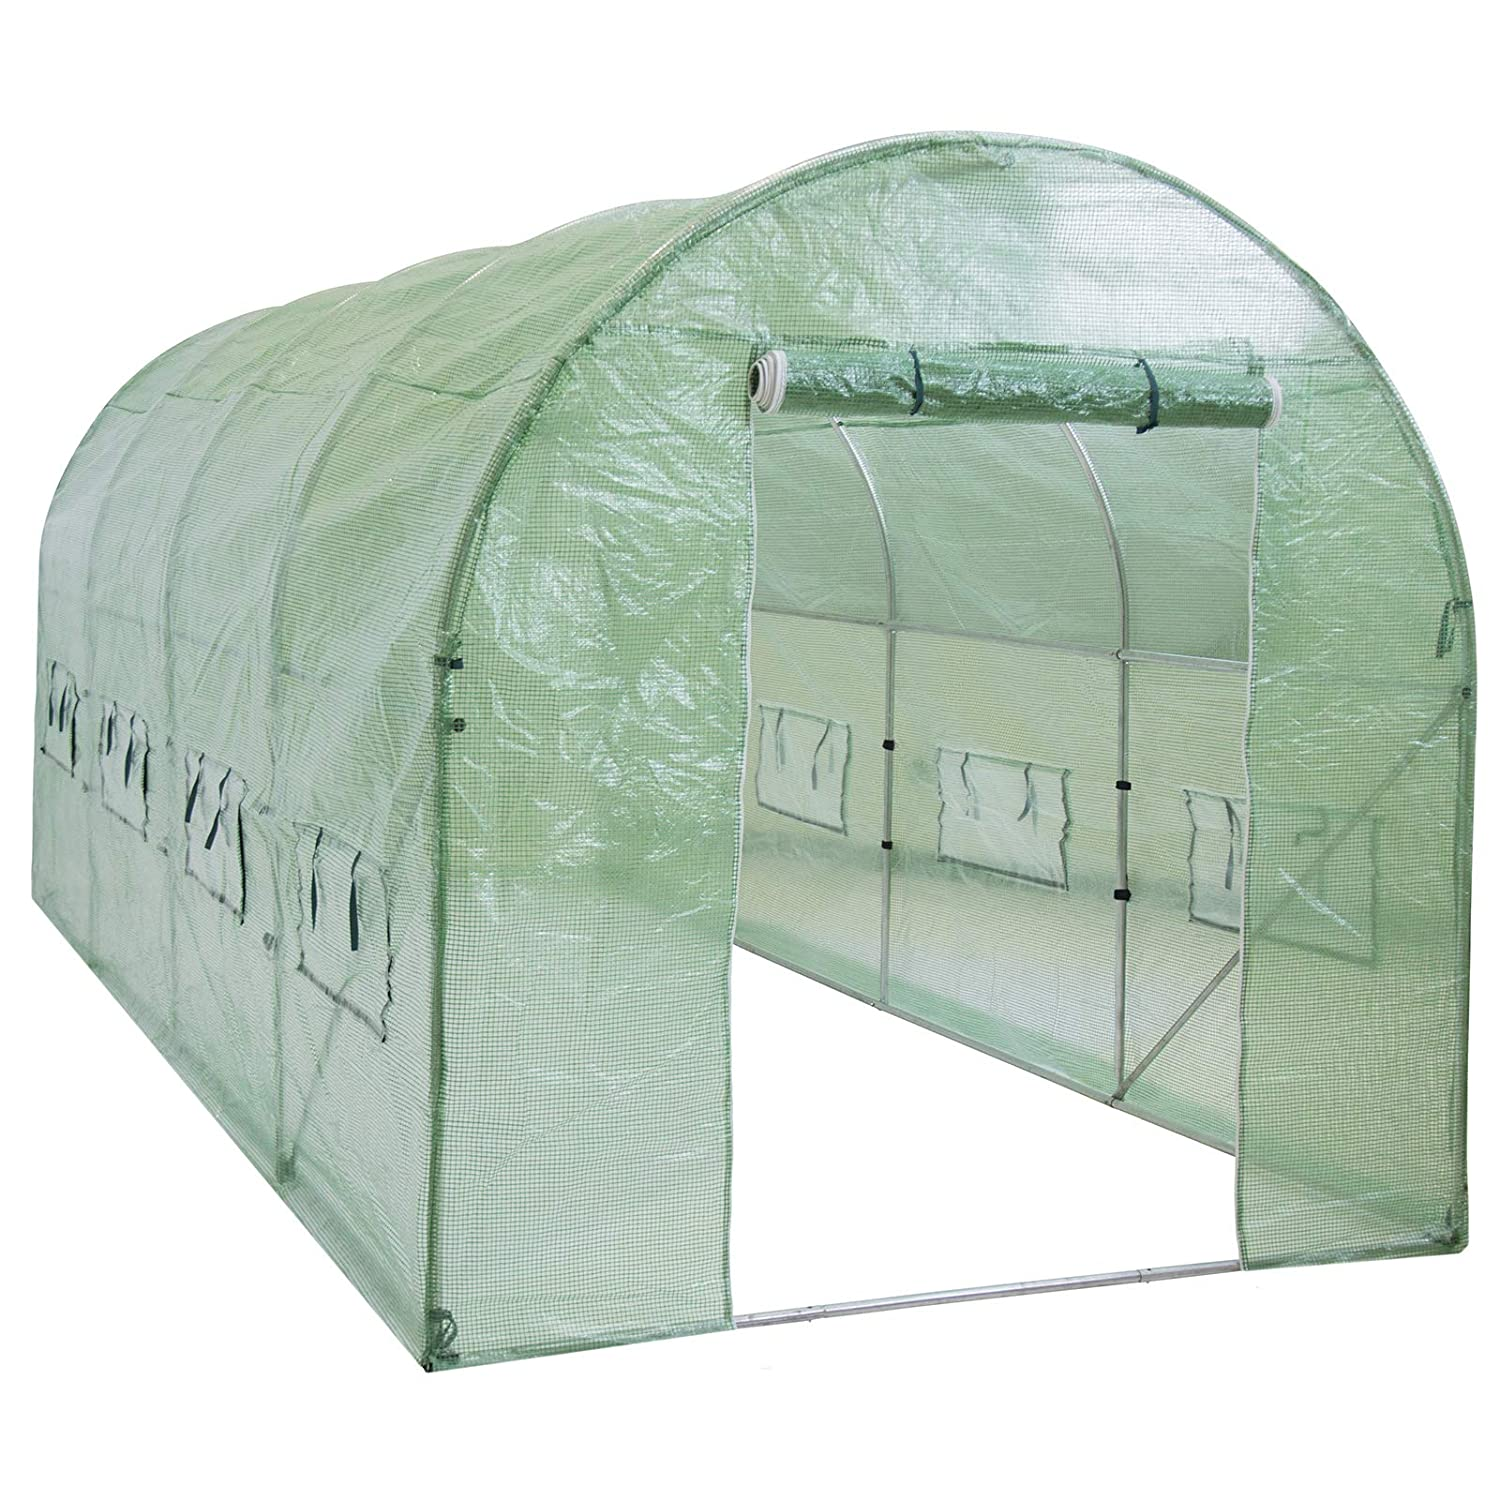 Best Choice Products Sky1917 15x7x7ft Portable Large Walk In Tunnel Garden Plant Greenhouse Tent 15 X 7 X 7